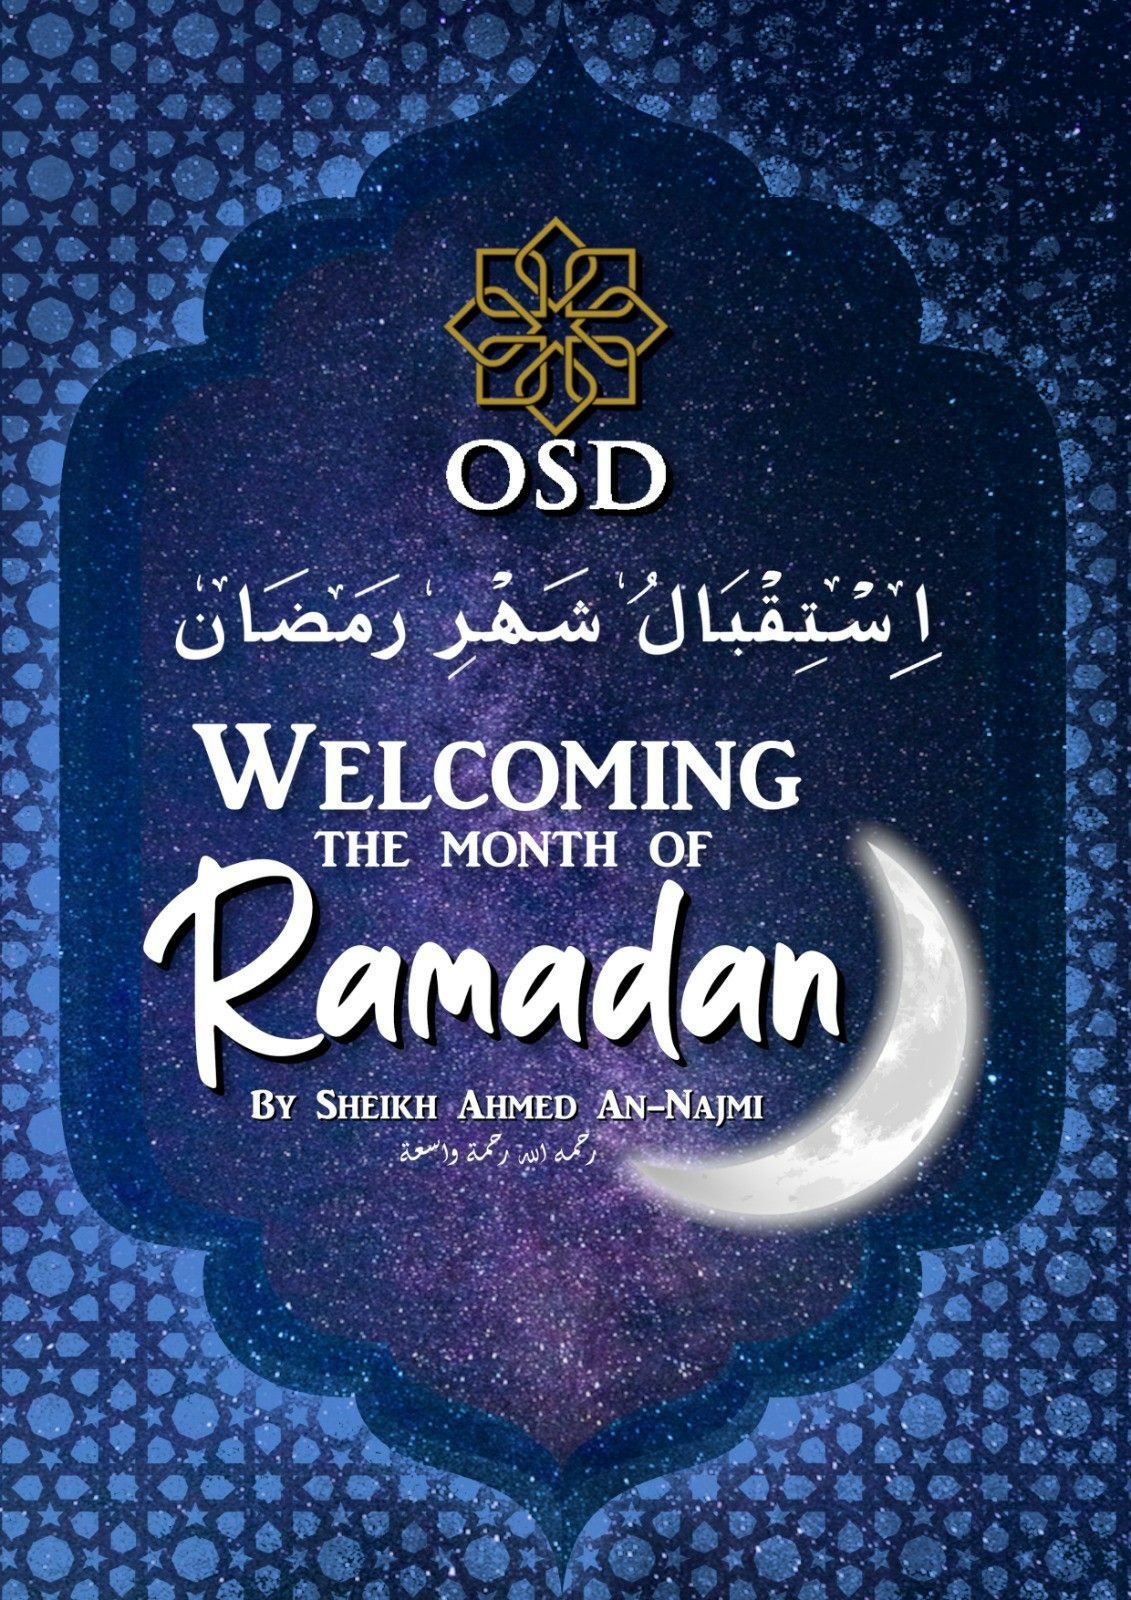 Welcoming The Month Of Ramadan Free Pdf Published By Oxford Salafi Dawah Ramadan Months Welcome